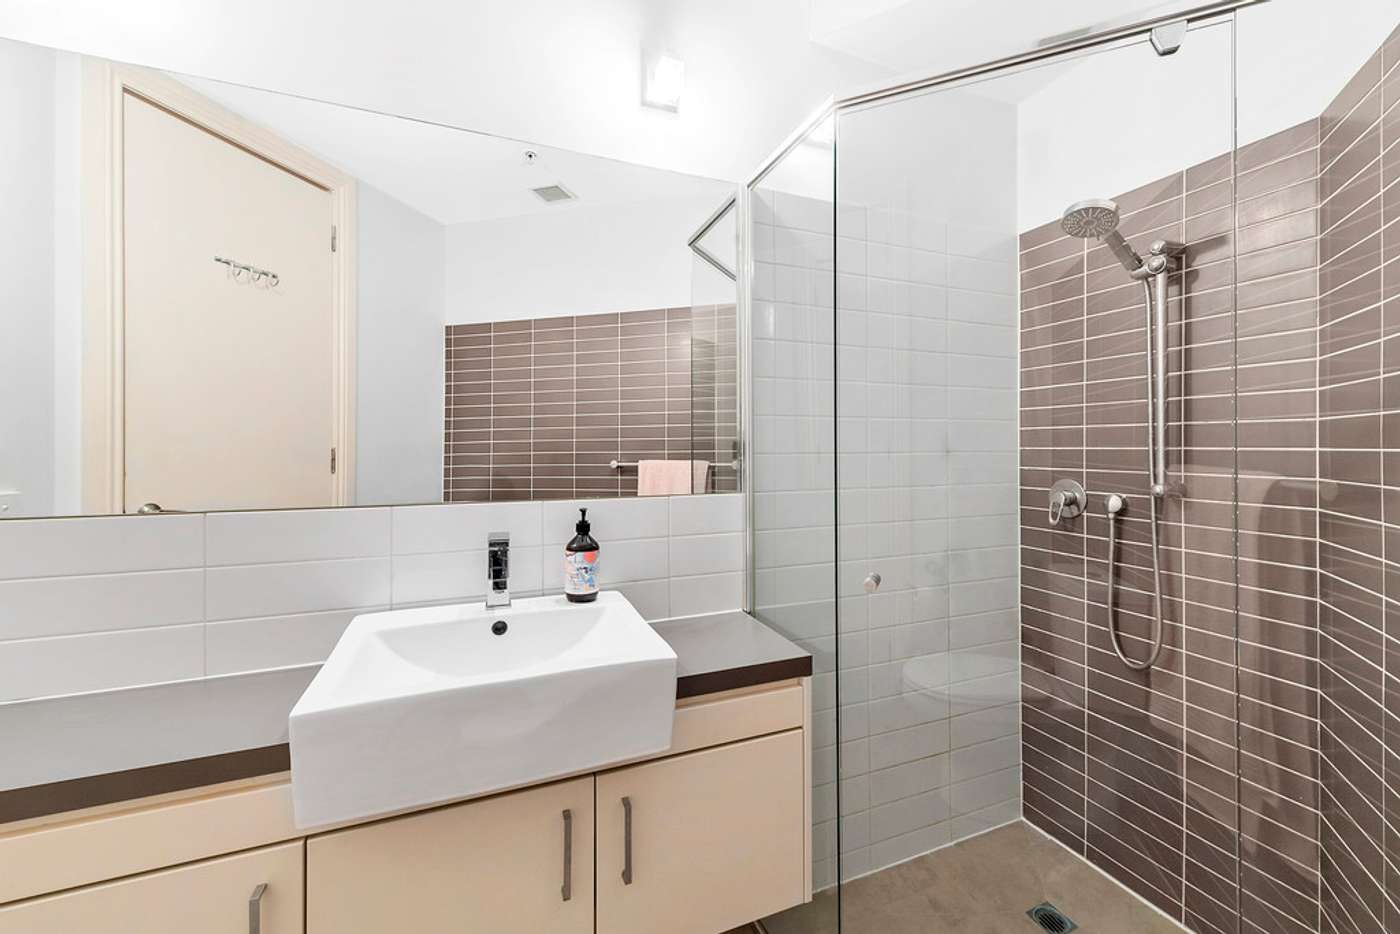 Fifth view of Homely apartment listing, 18/96 Mercer Street, Geelong VIC 3220